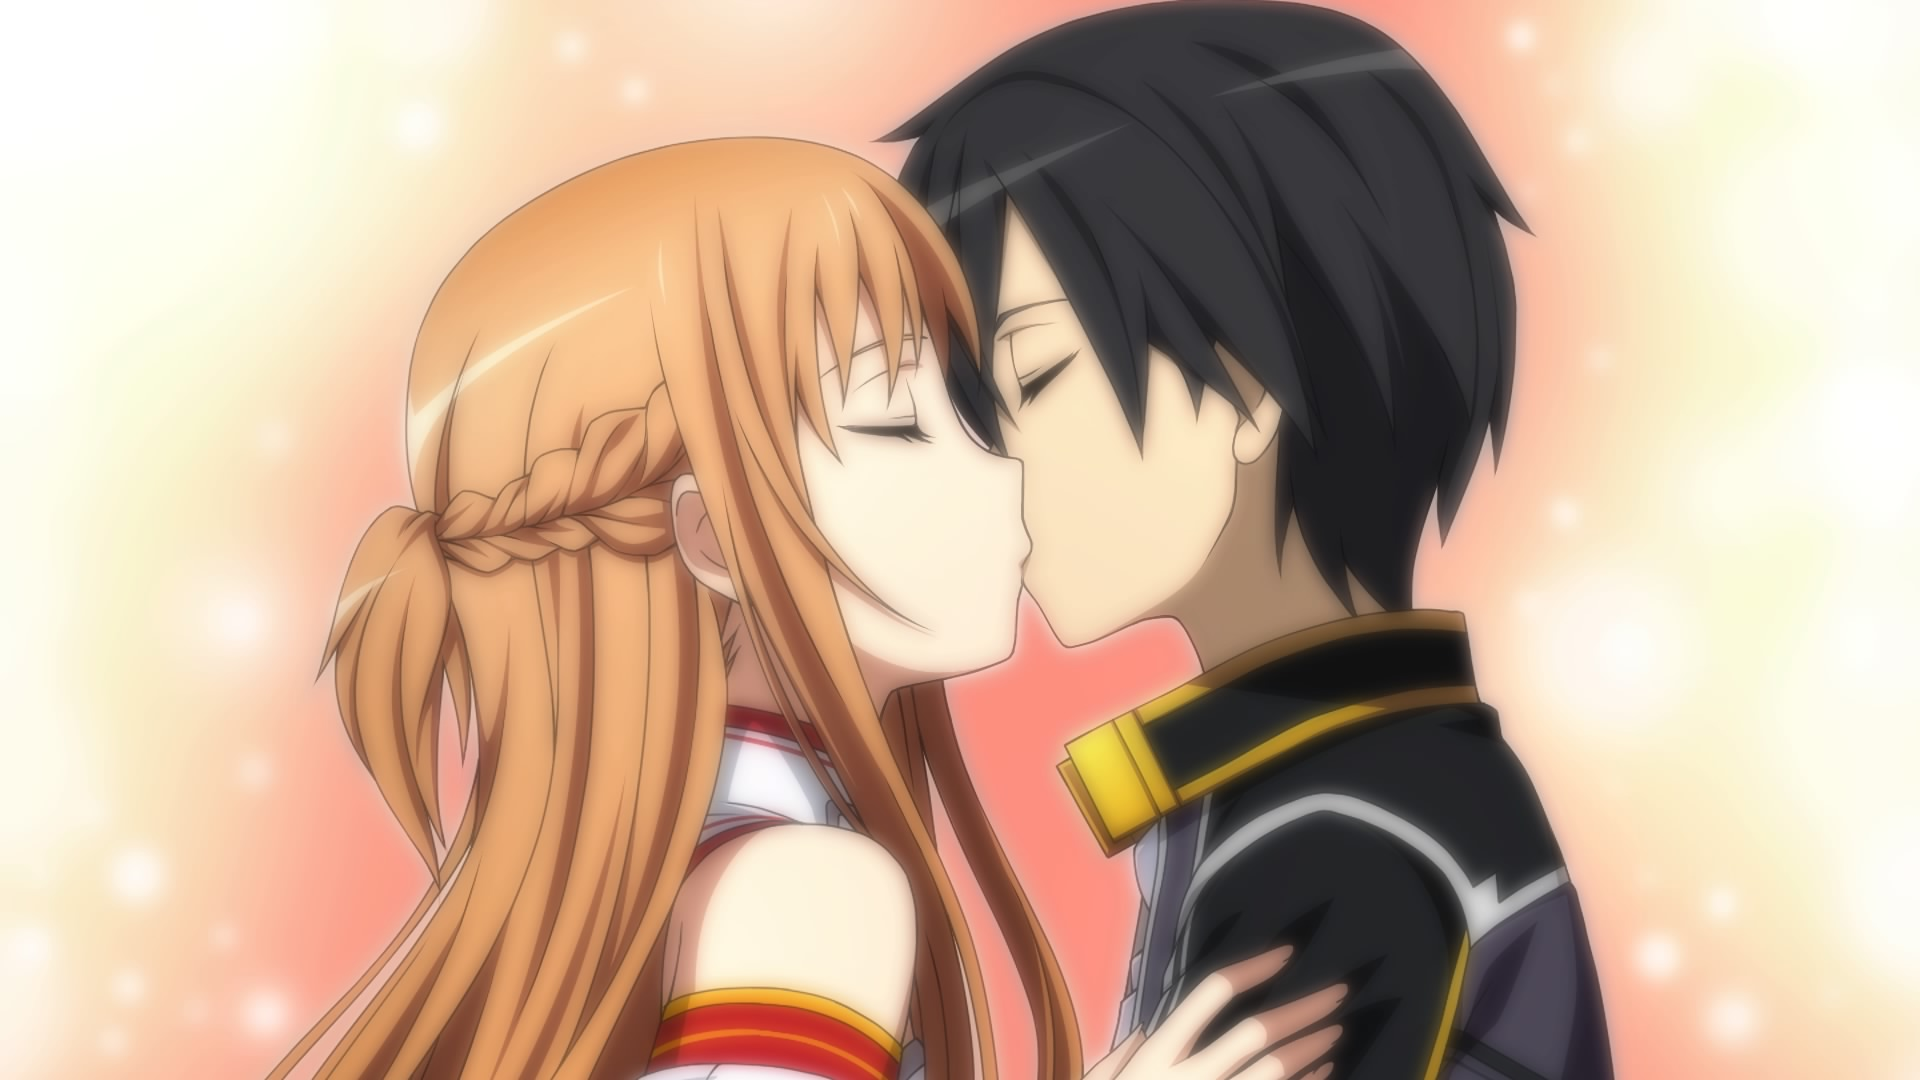 https://vignette.wikia.nocookie.net/swordartonline/images/8/86/Kirito_and_Asuna_kiss_HF.png/revision/latest?cb=20160915190831